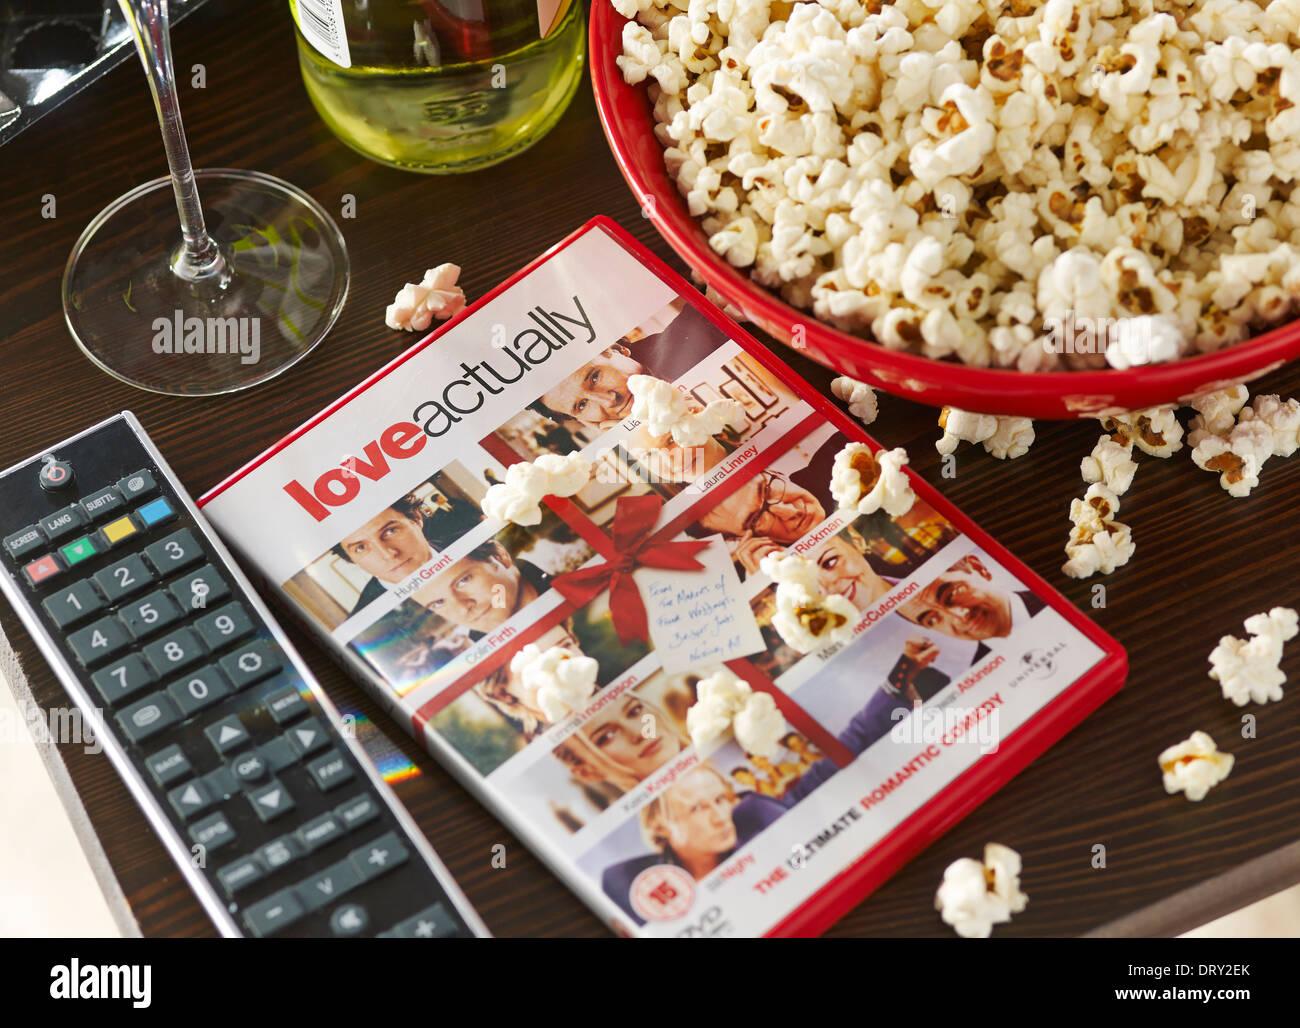 A night in with a DVD and popcorn - Stock Image